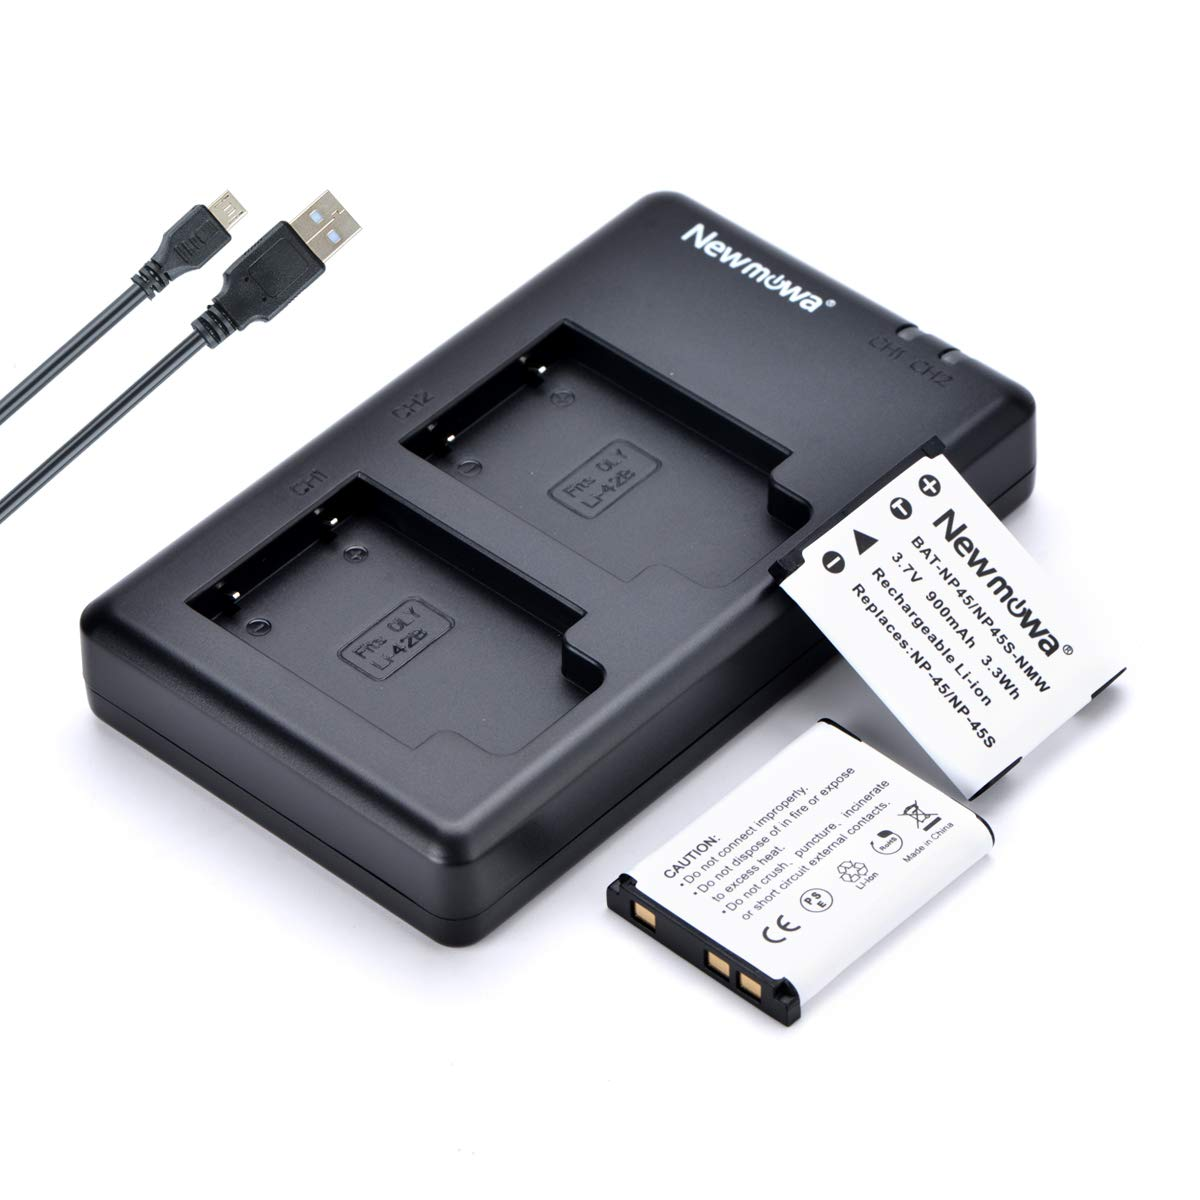 Newmowa NP-45 NP-45S Replacment Battery (2 Pack) and Dual USB Charger Kit for Fujifilm INSTAX Mini 90 and FinePix XP50 XP60 XP70 XP80 XP90 XP120 XP130 XP140 T350 T360 T400 T500 T510 T550 JX500 JX520 by Newmowa